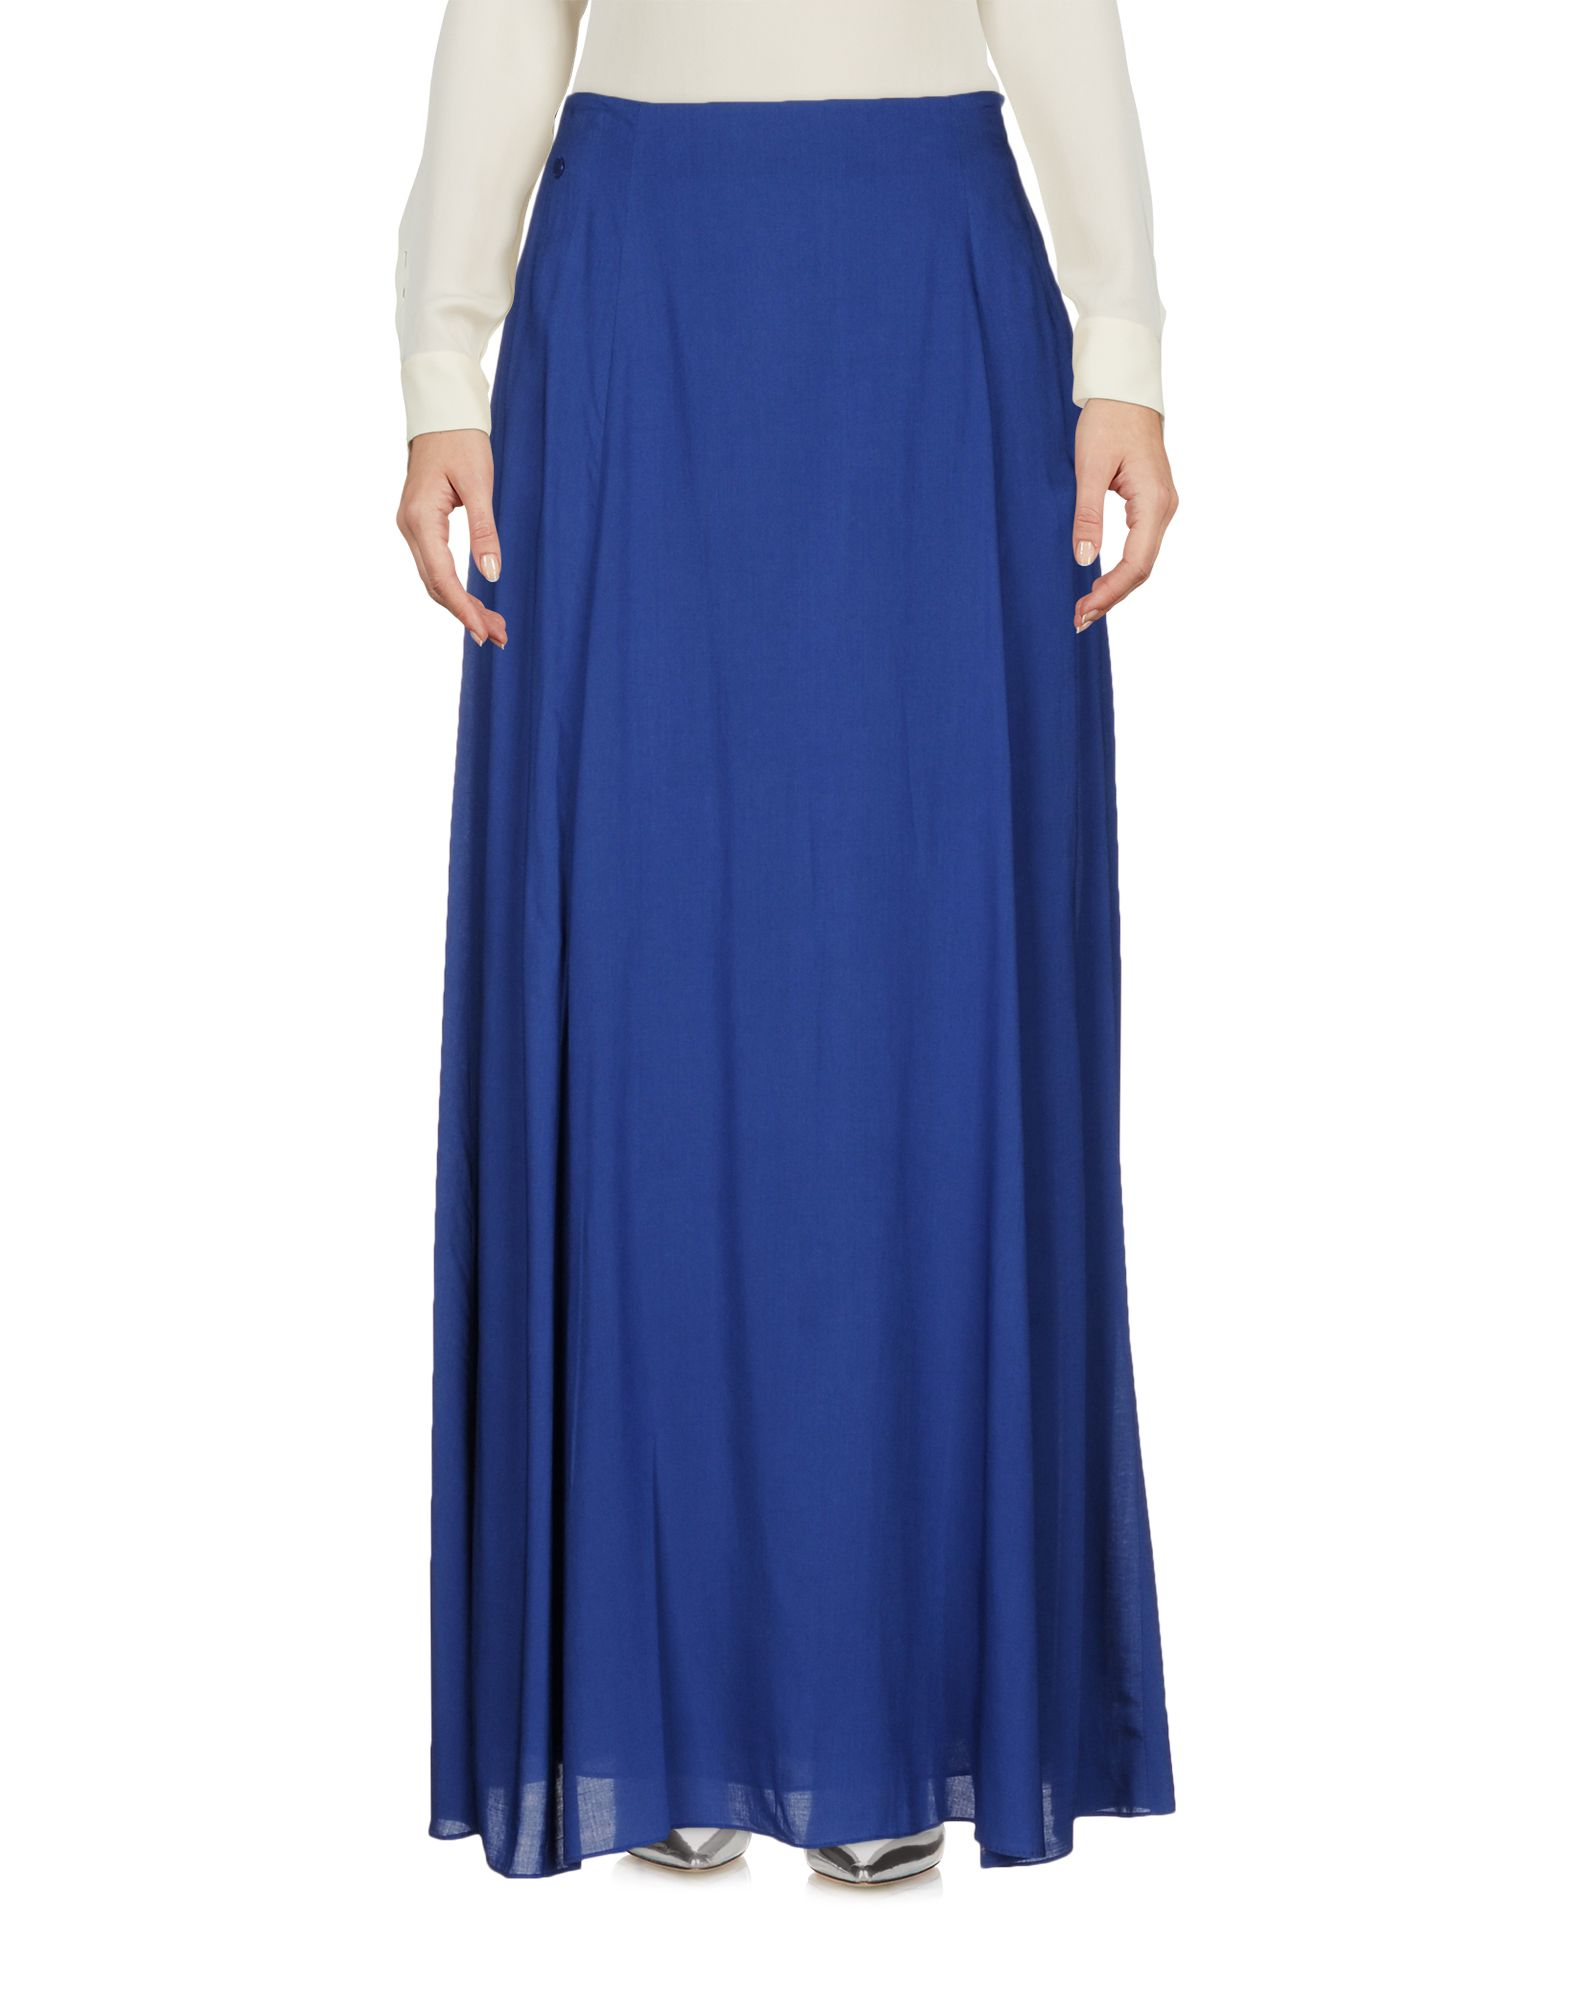 a89afd2046b6 Armani Jeans Long Skirt - Women Armani Jeans Long Skirts online on YOOX  United States - 35366789QU